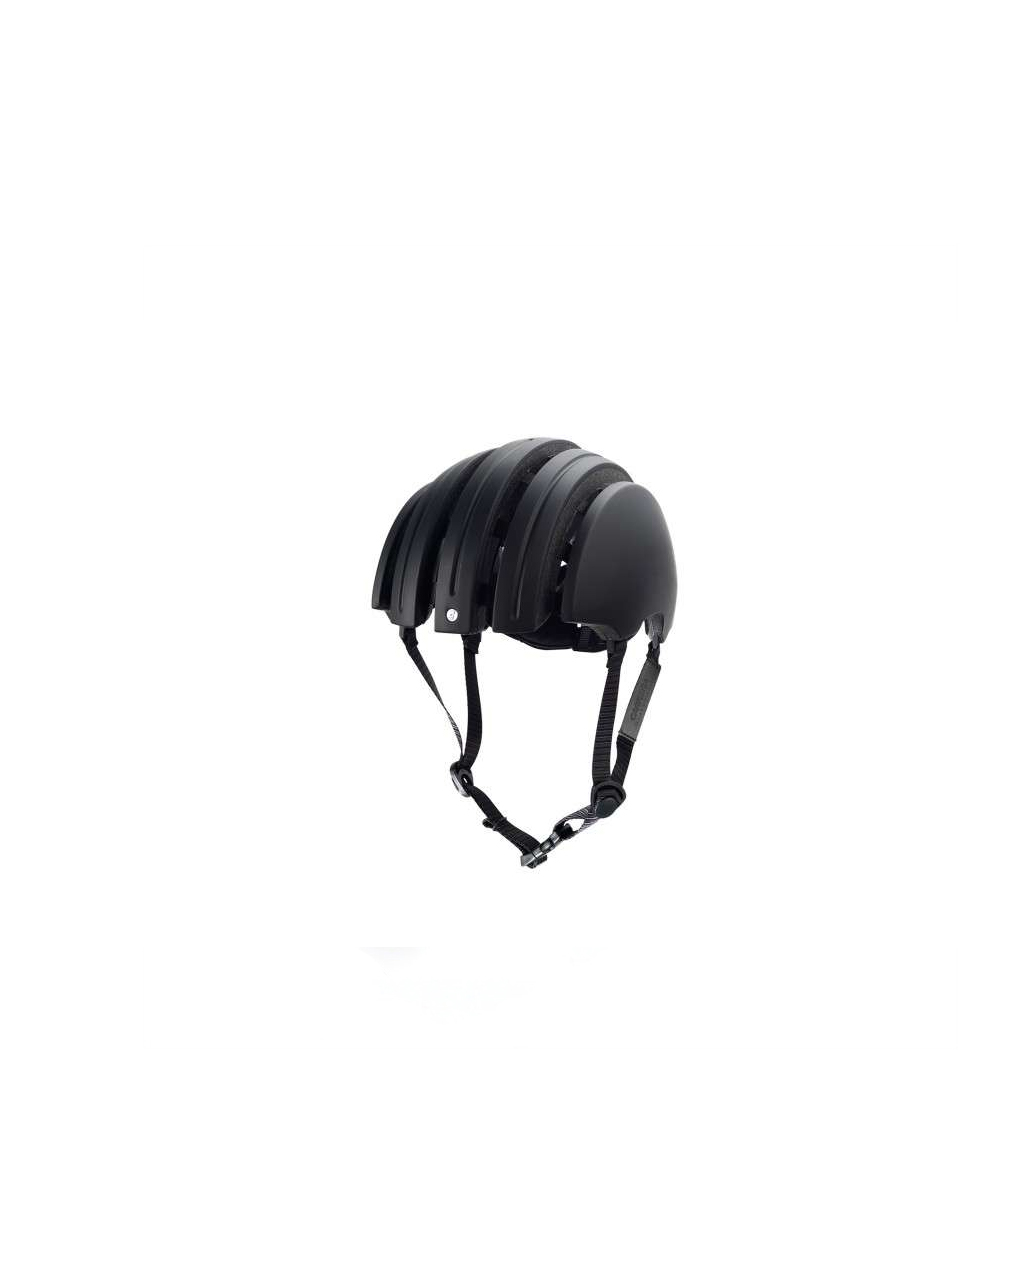 Brooks - Carrera Foldable Helmet - Black / Black